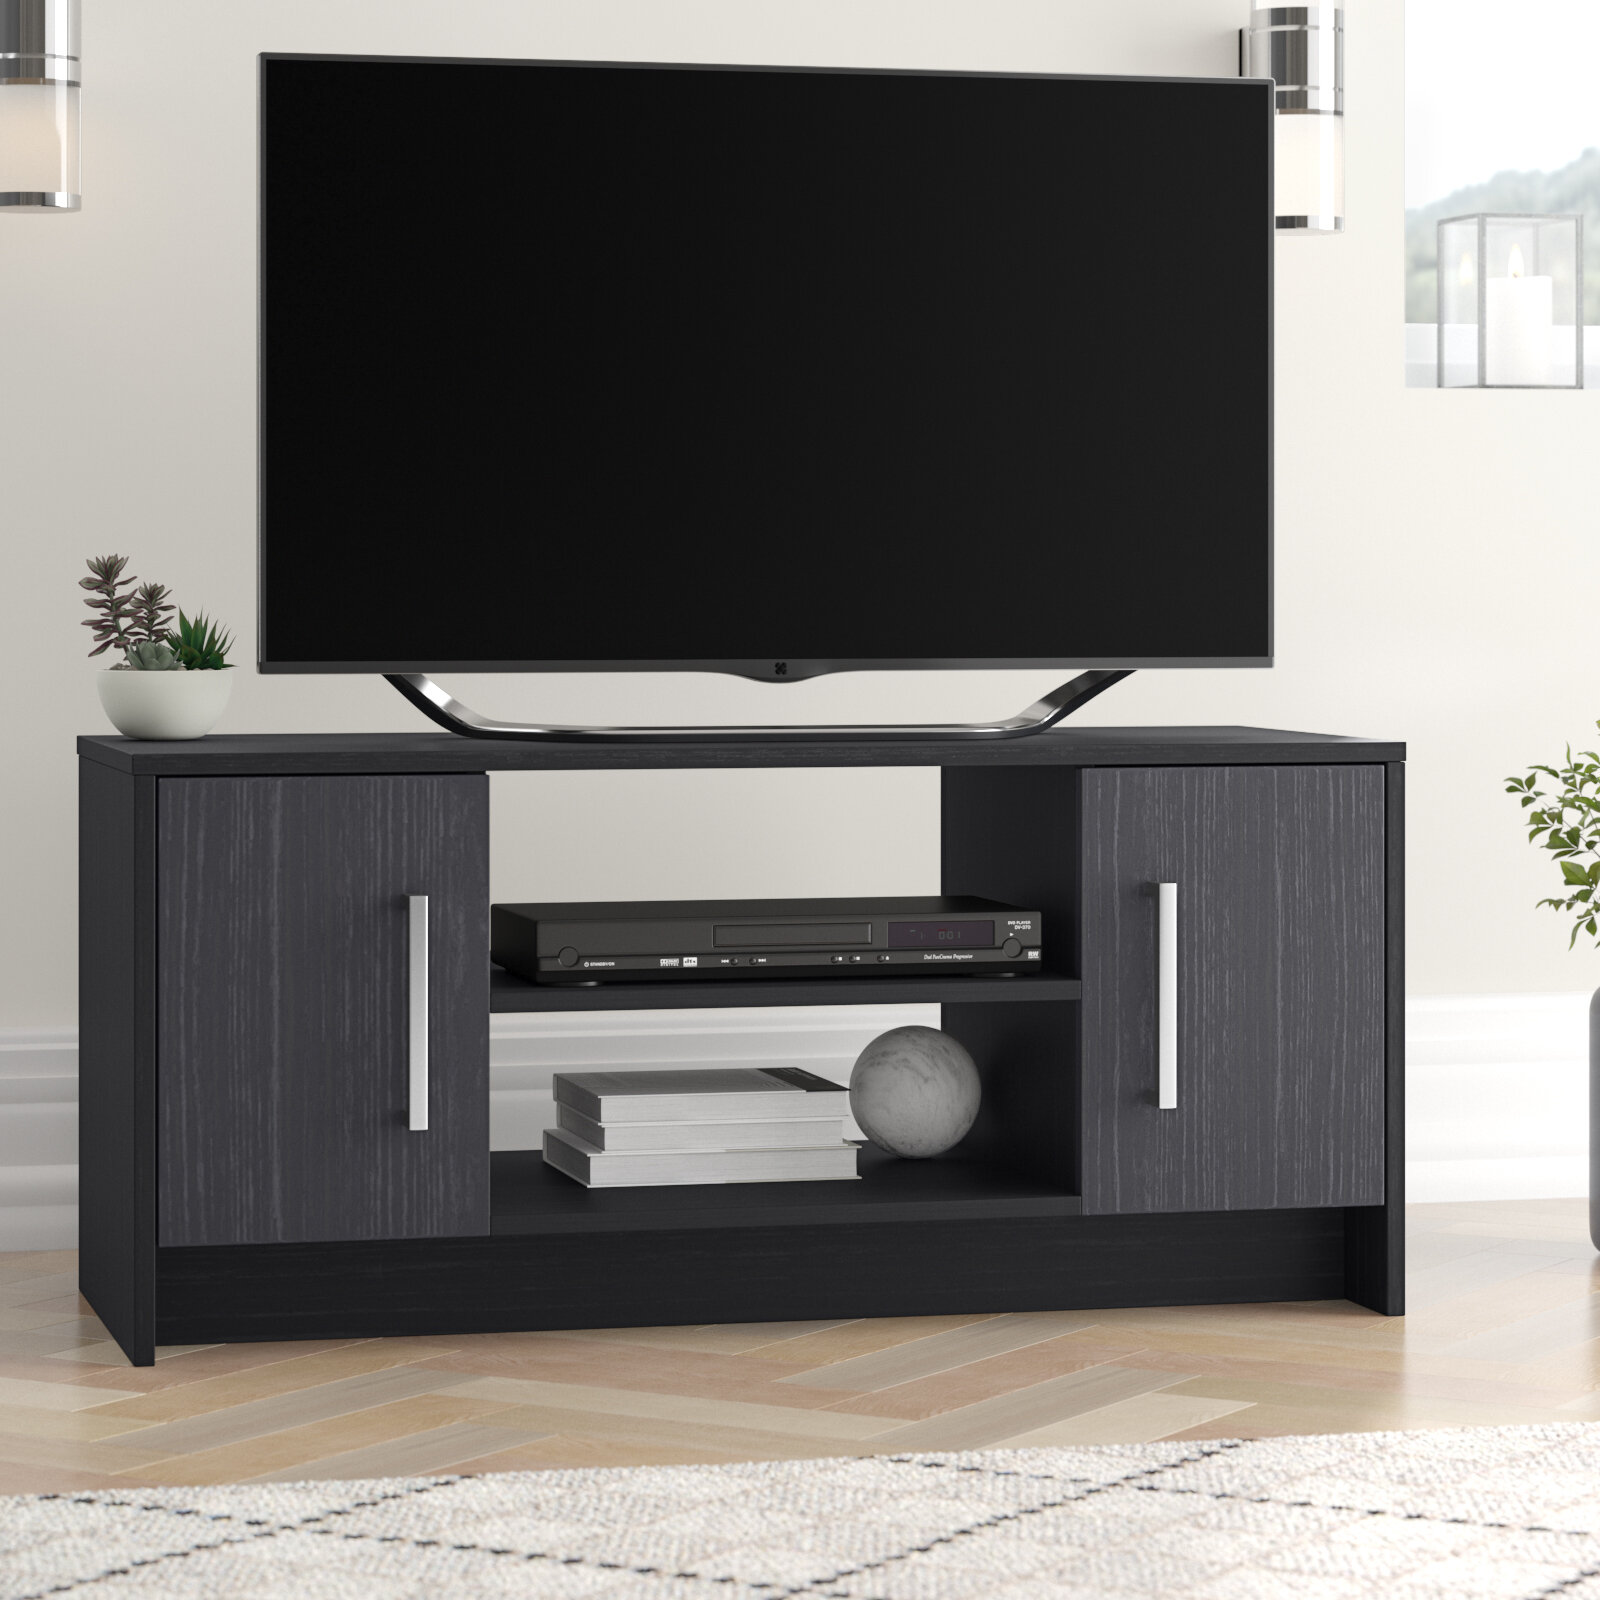 17 Stories Miley Tv Stand For Tvs Up To 50 Reviews Wayfair Co Uk